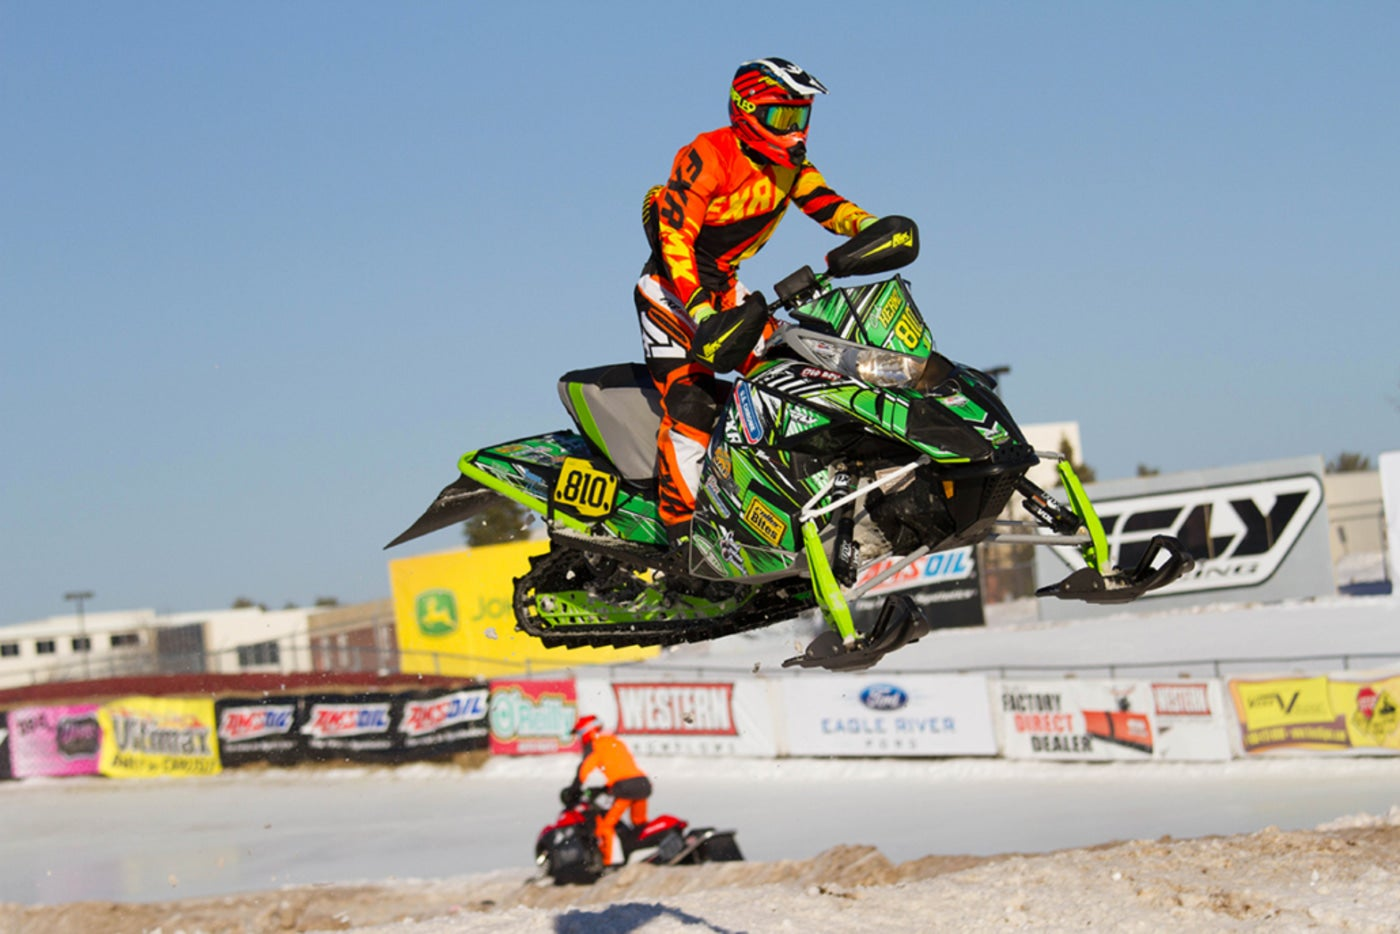 professional snowmobiler in full gear jumping a hill at a derby